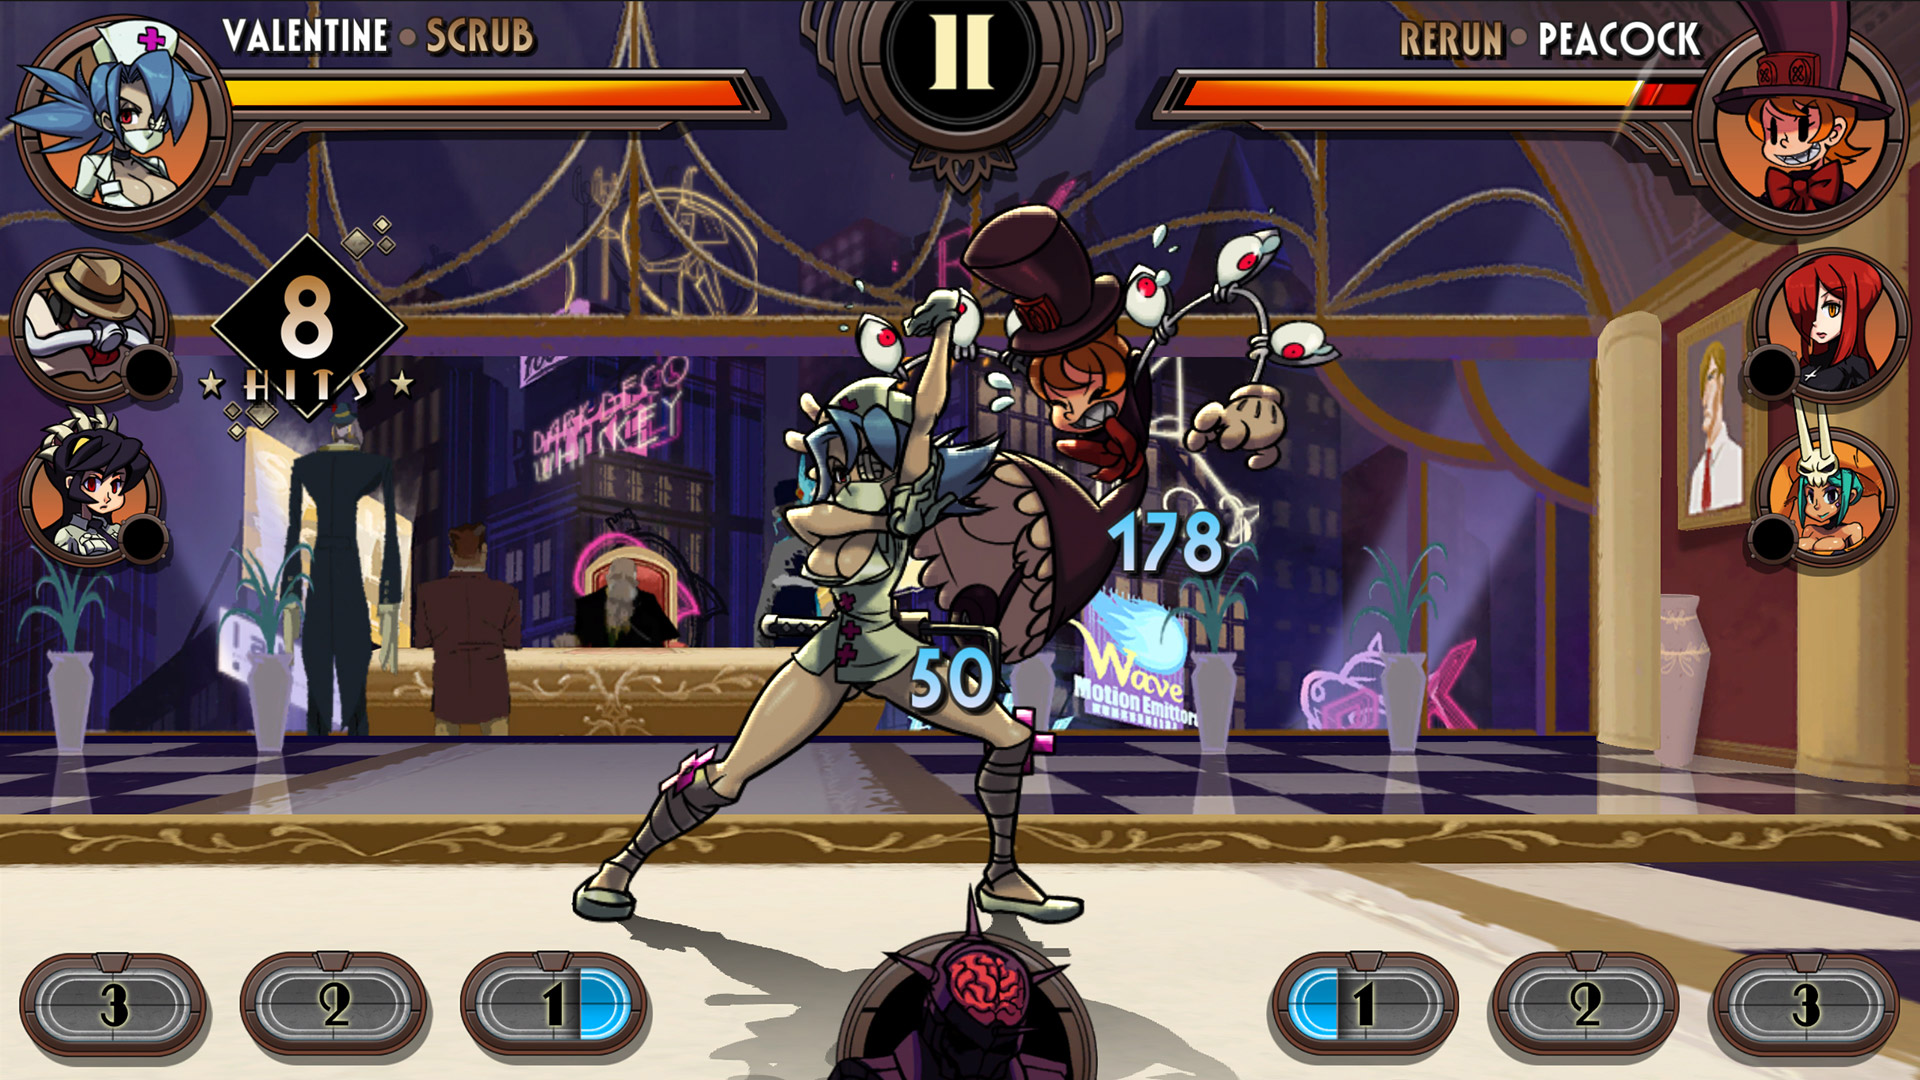 Skullgirls is coming to Android and iOS - Polygon